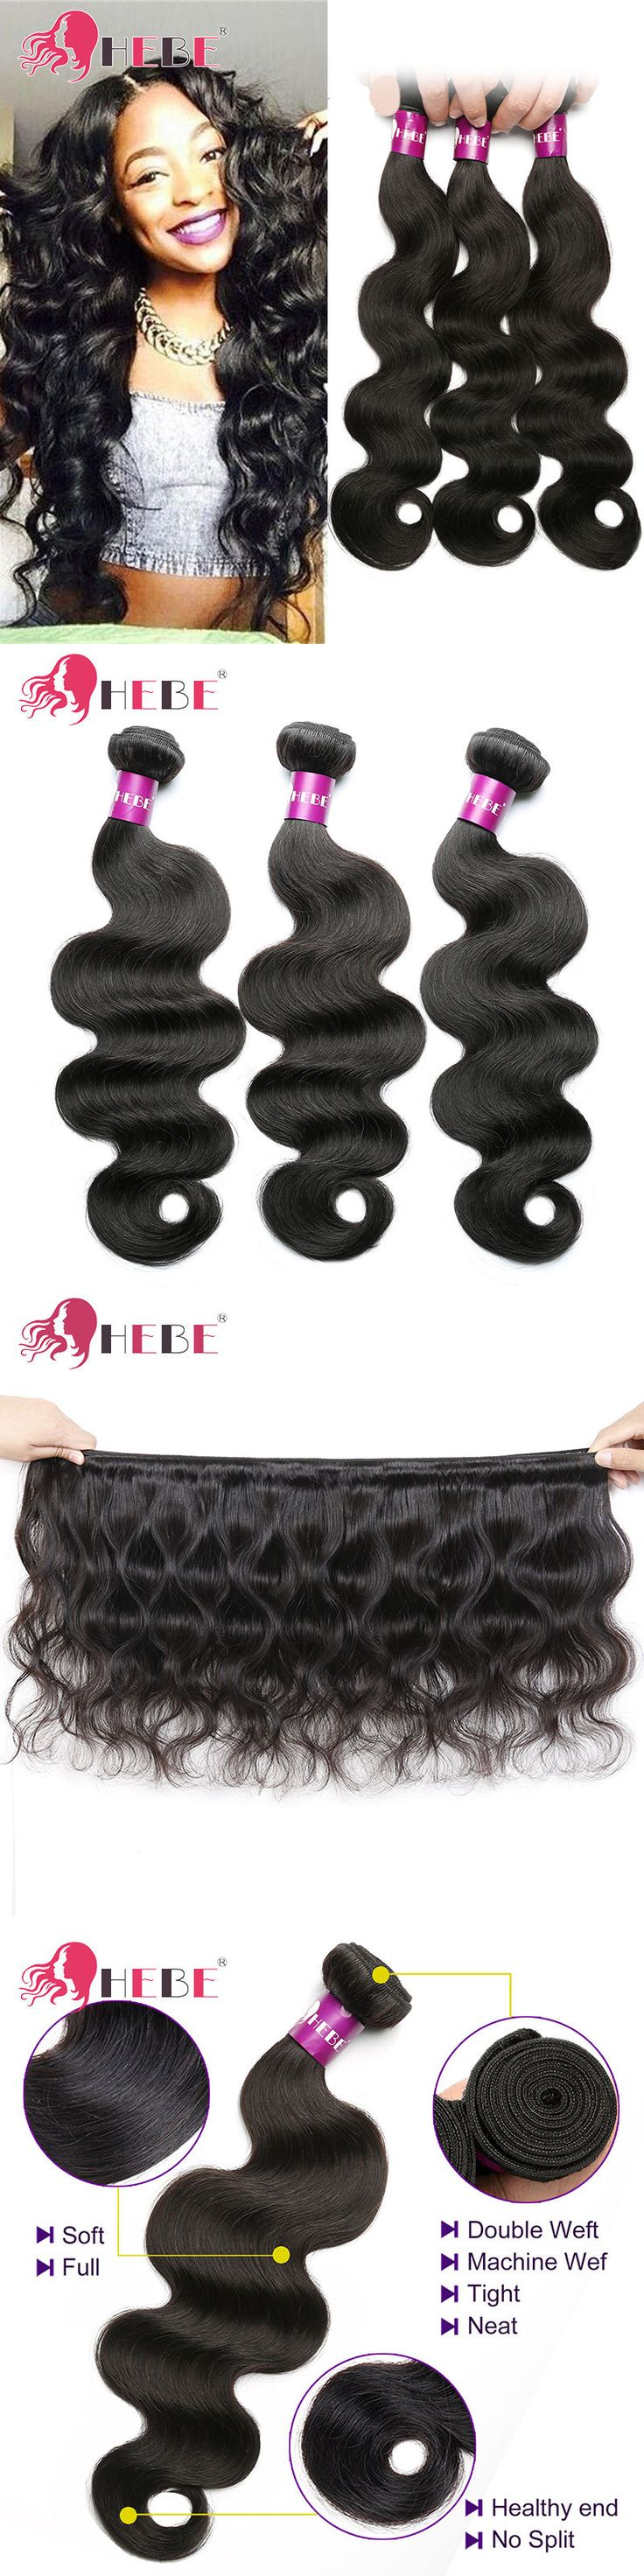 Hair Extensions: Brazilian Virgin Hair 100G Per Bundle Body Wave Unprocessed Human Hair Extension -> BUY IT NOW ONLY: $74.1 on eBay!